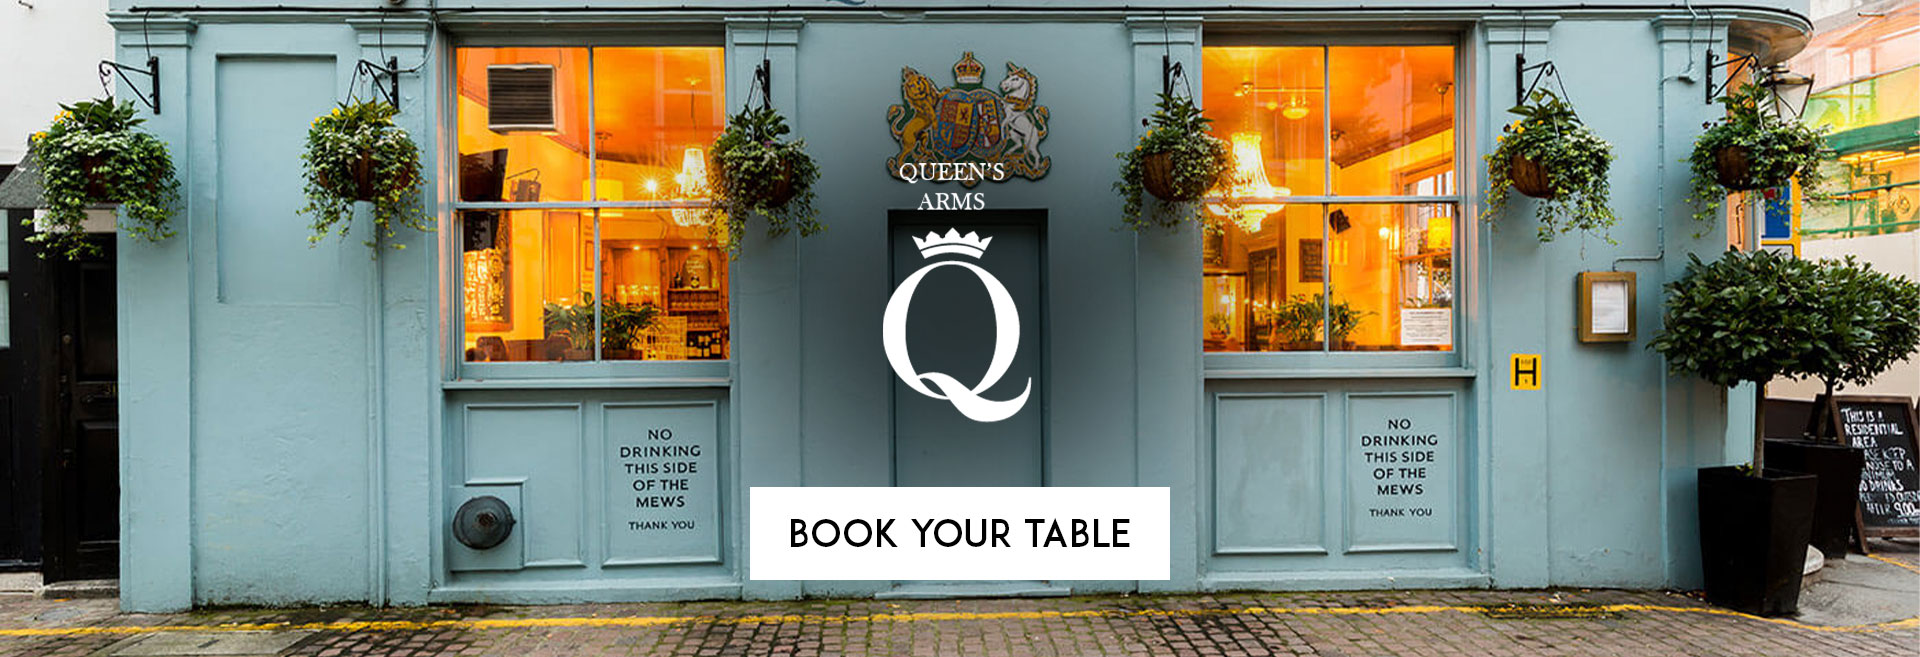 Book Your Table The Queen's Arms